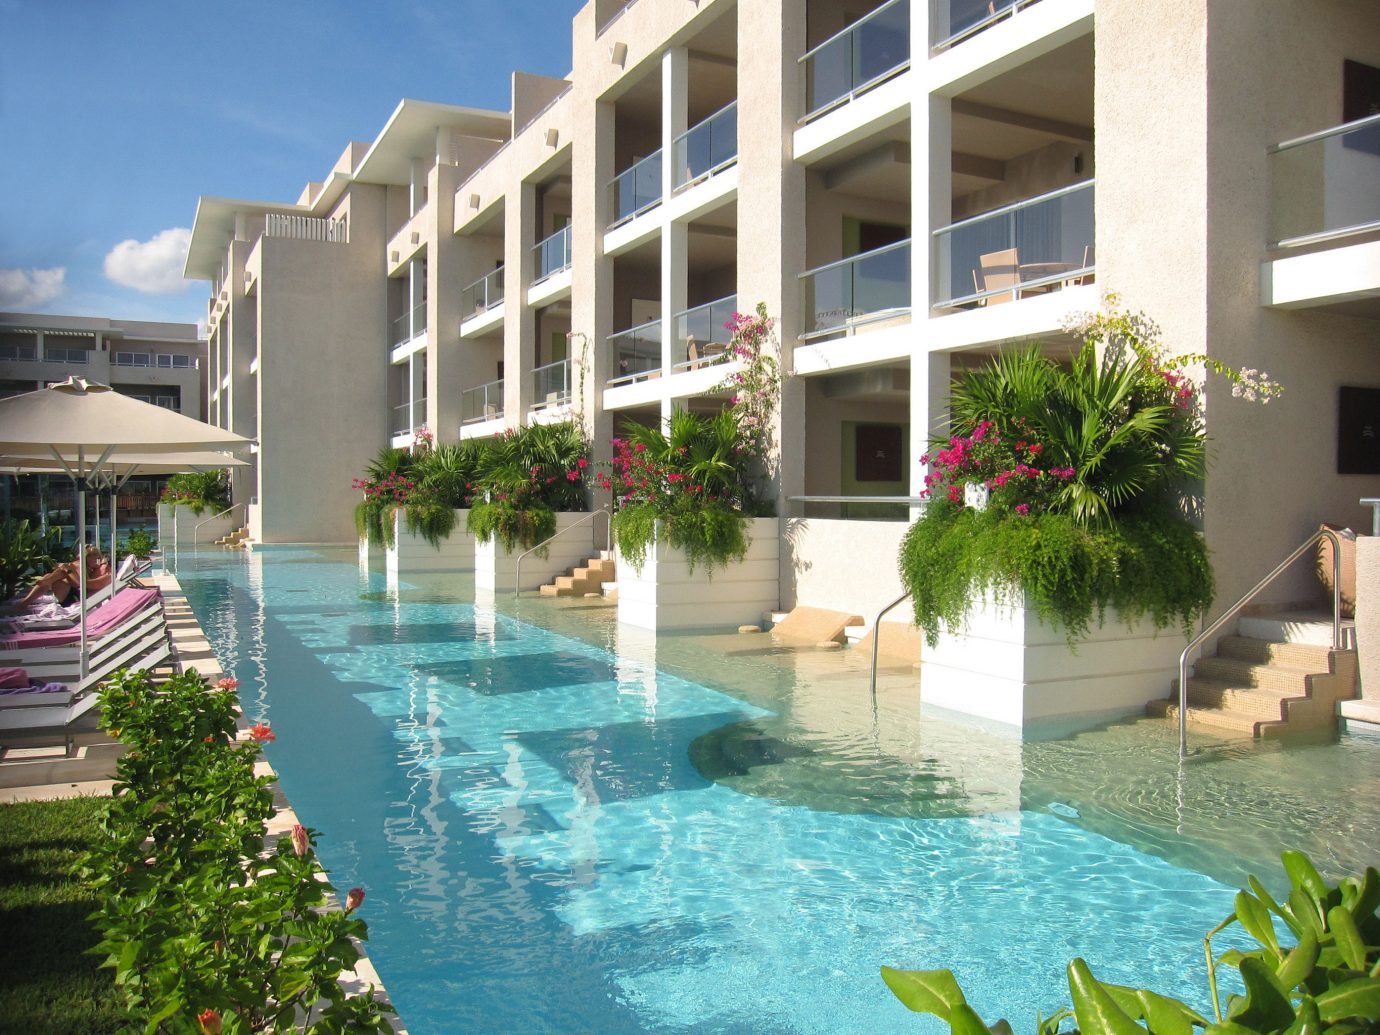 All-Inclusive Resorts Hotels building outdoor condominium property Resort swimming pool estate Villa real estate apartment mansion